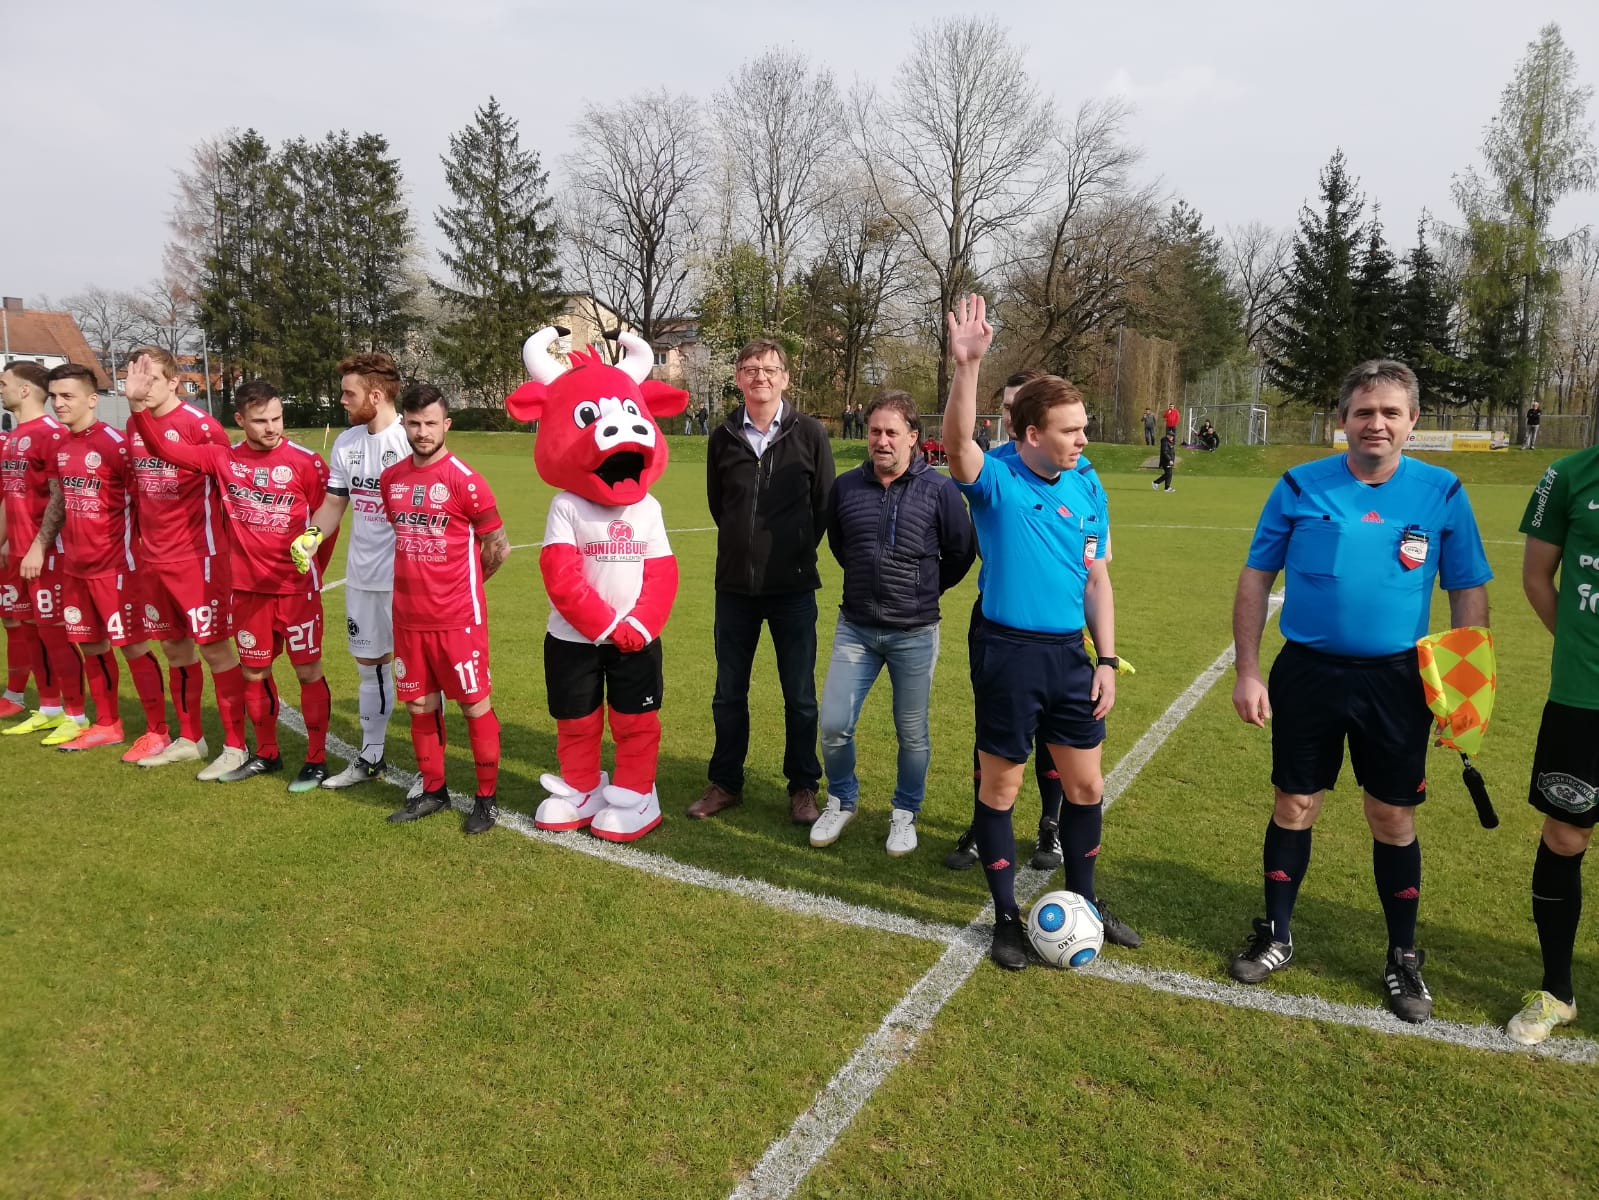 Ehrenanstoss Pillgrab Hans ASK vs Grieskirchen 13 04 2019 (3)